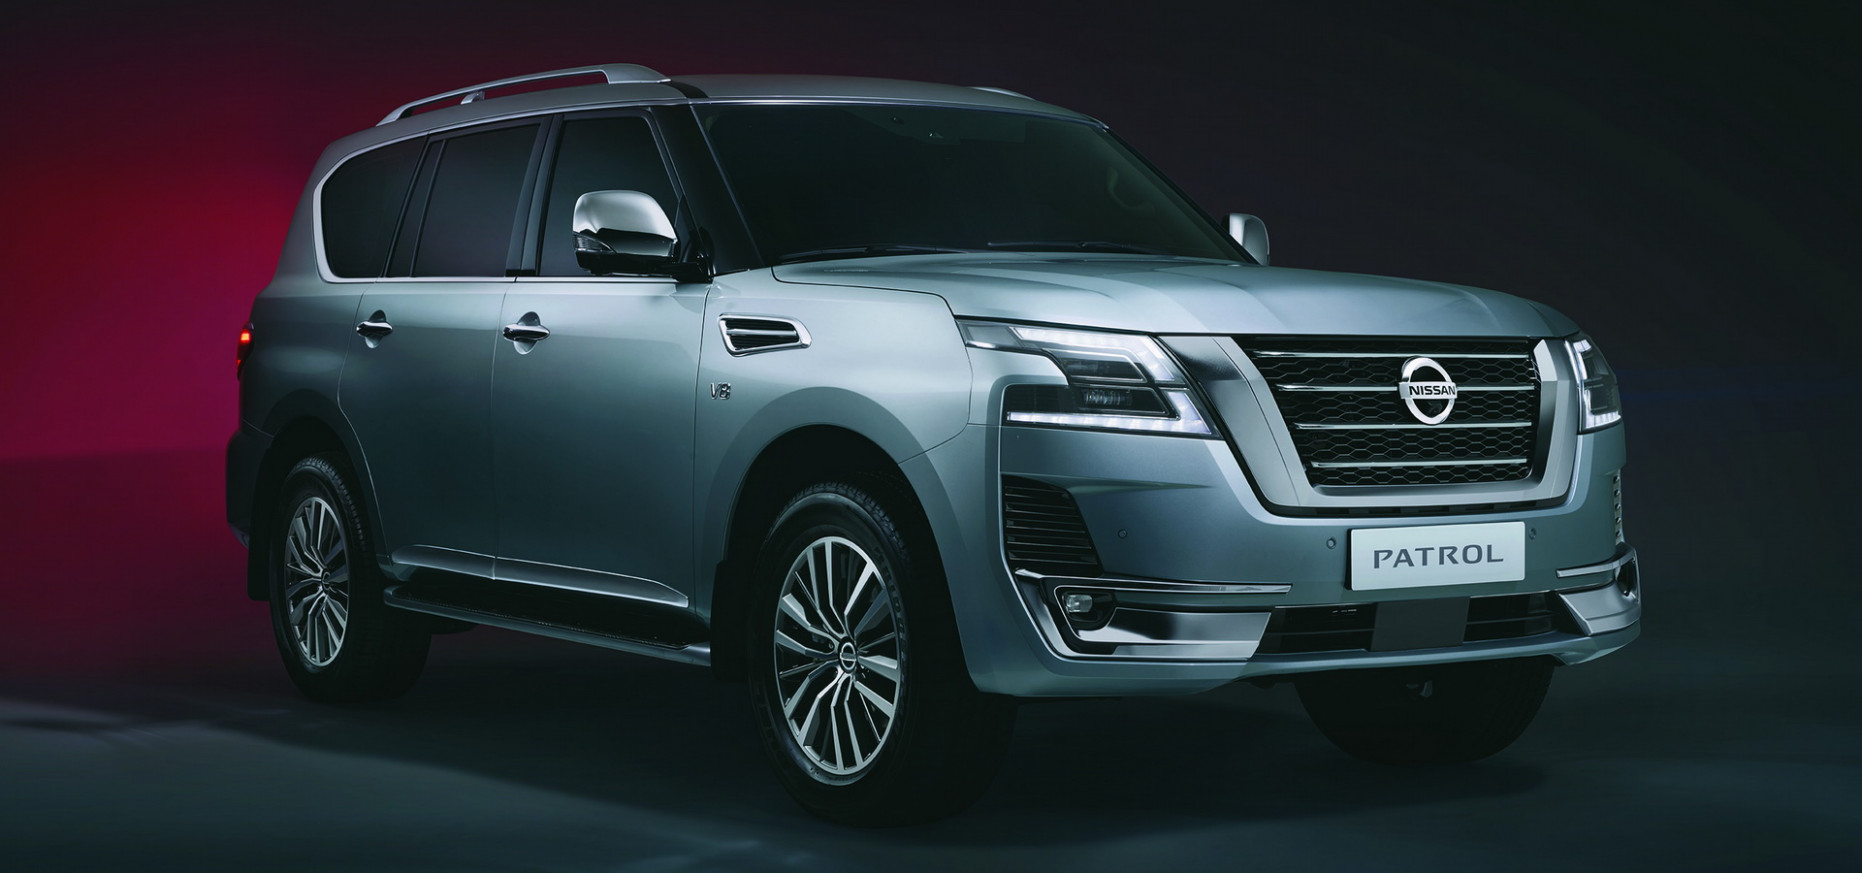 Redesign and Review Nissan Patrol 2022 Redesign